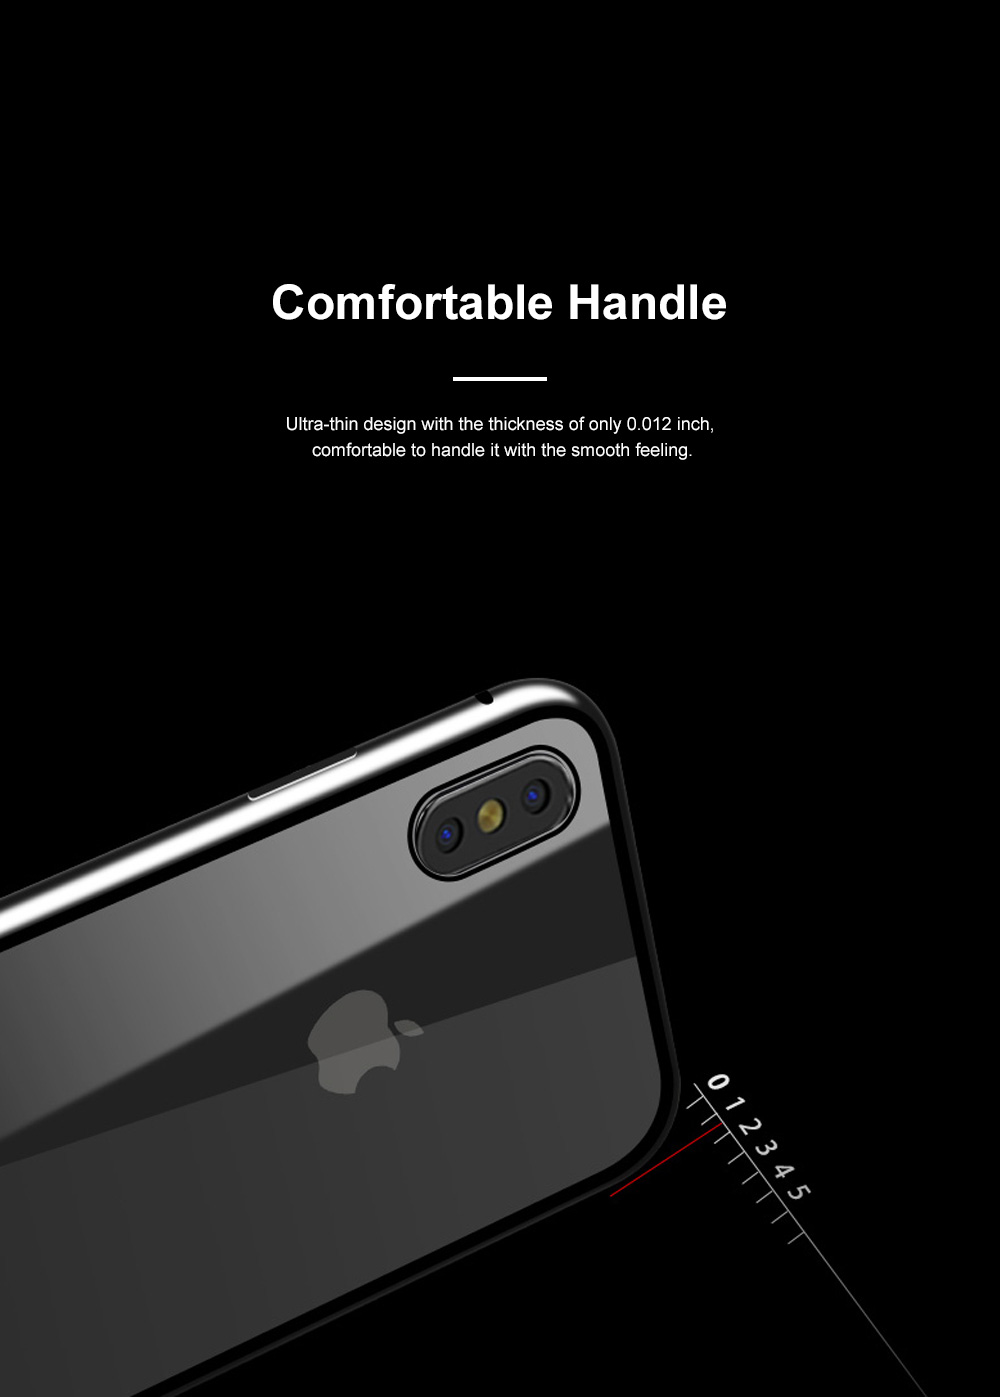 Magnetic Adsorption Phone Case Double-Sided Tempered Glass Protection Shell Compatible for iPhone 6 7 8 11 XS Max & XS 4